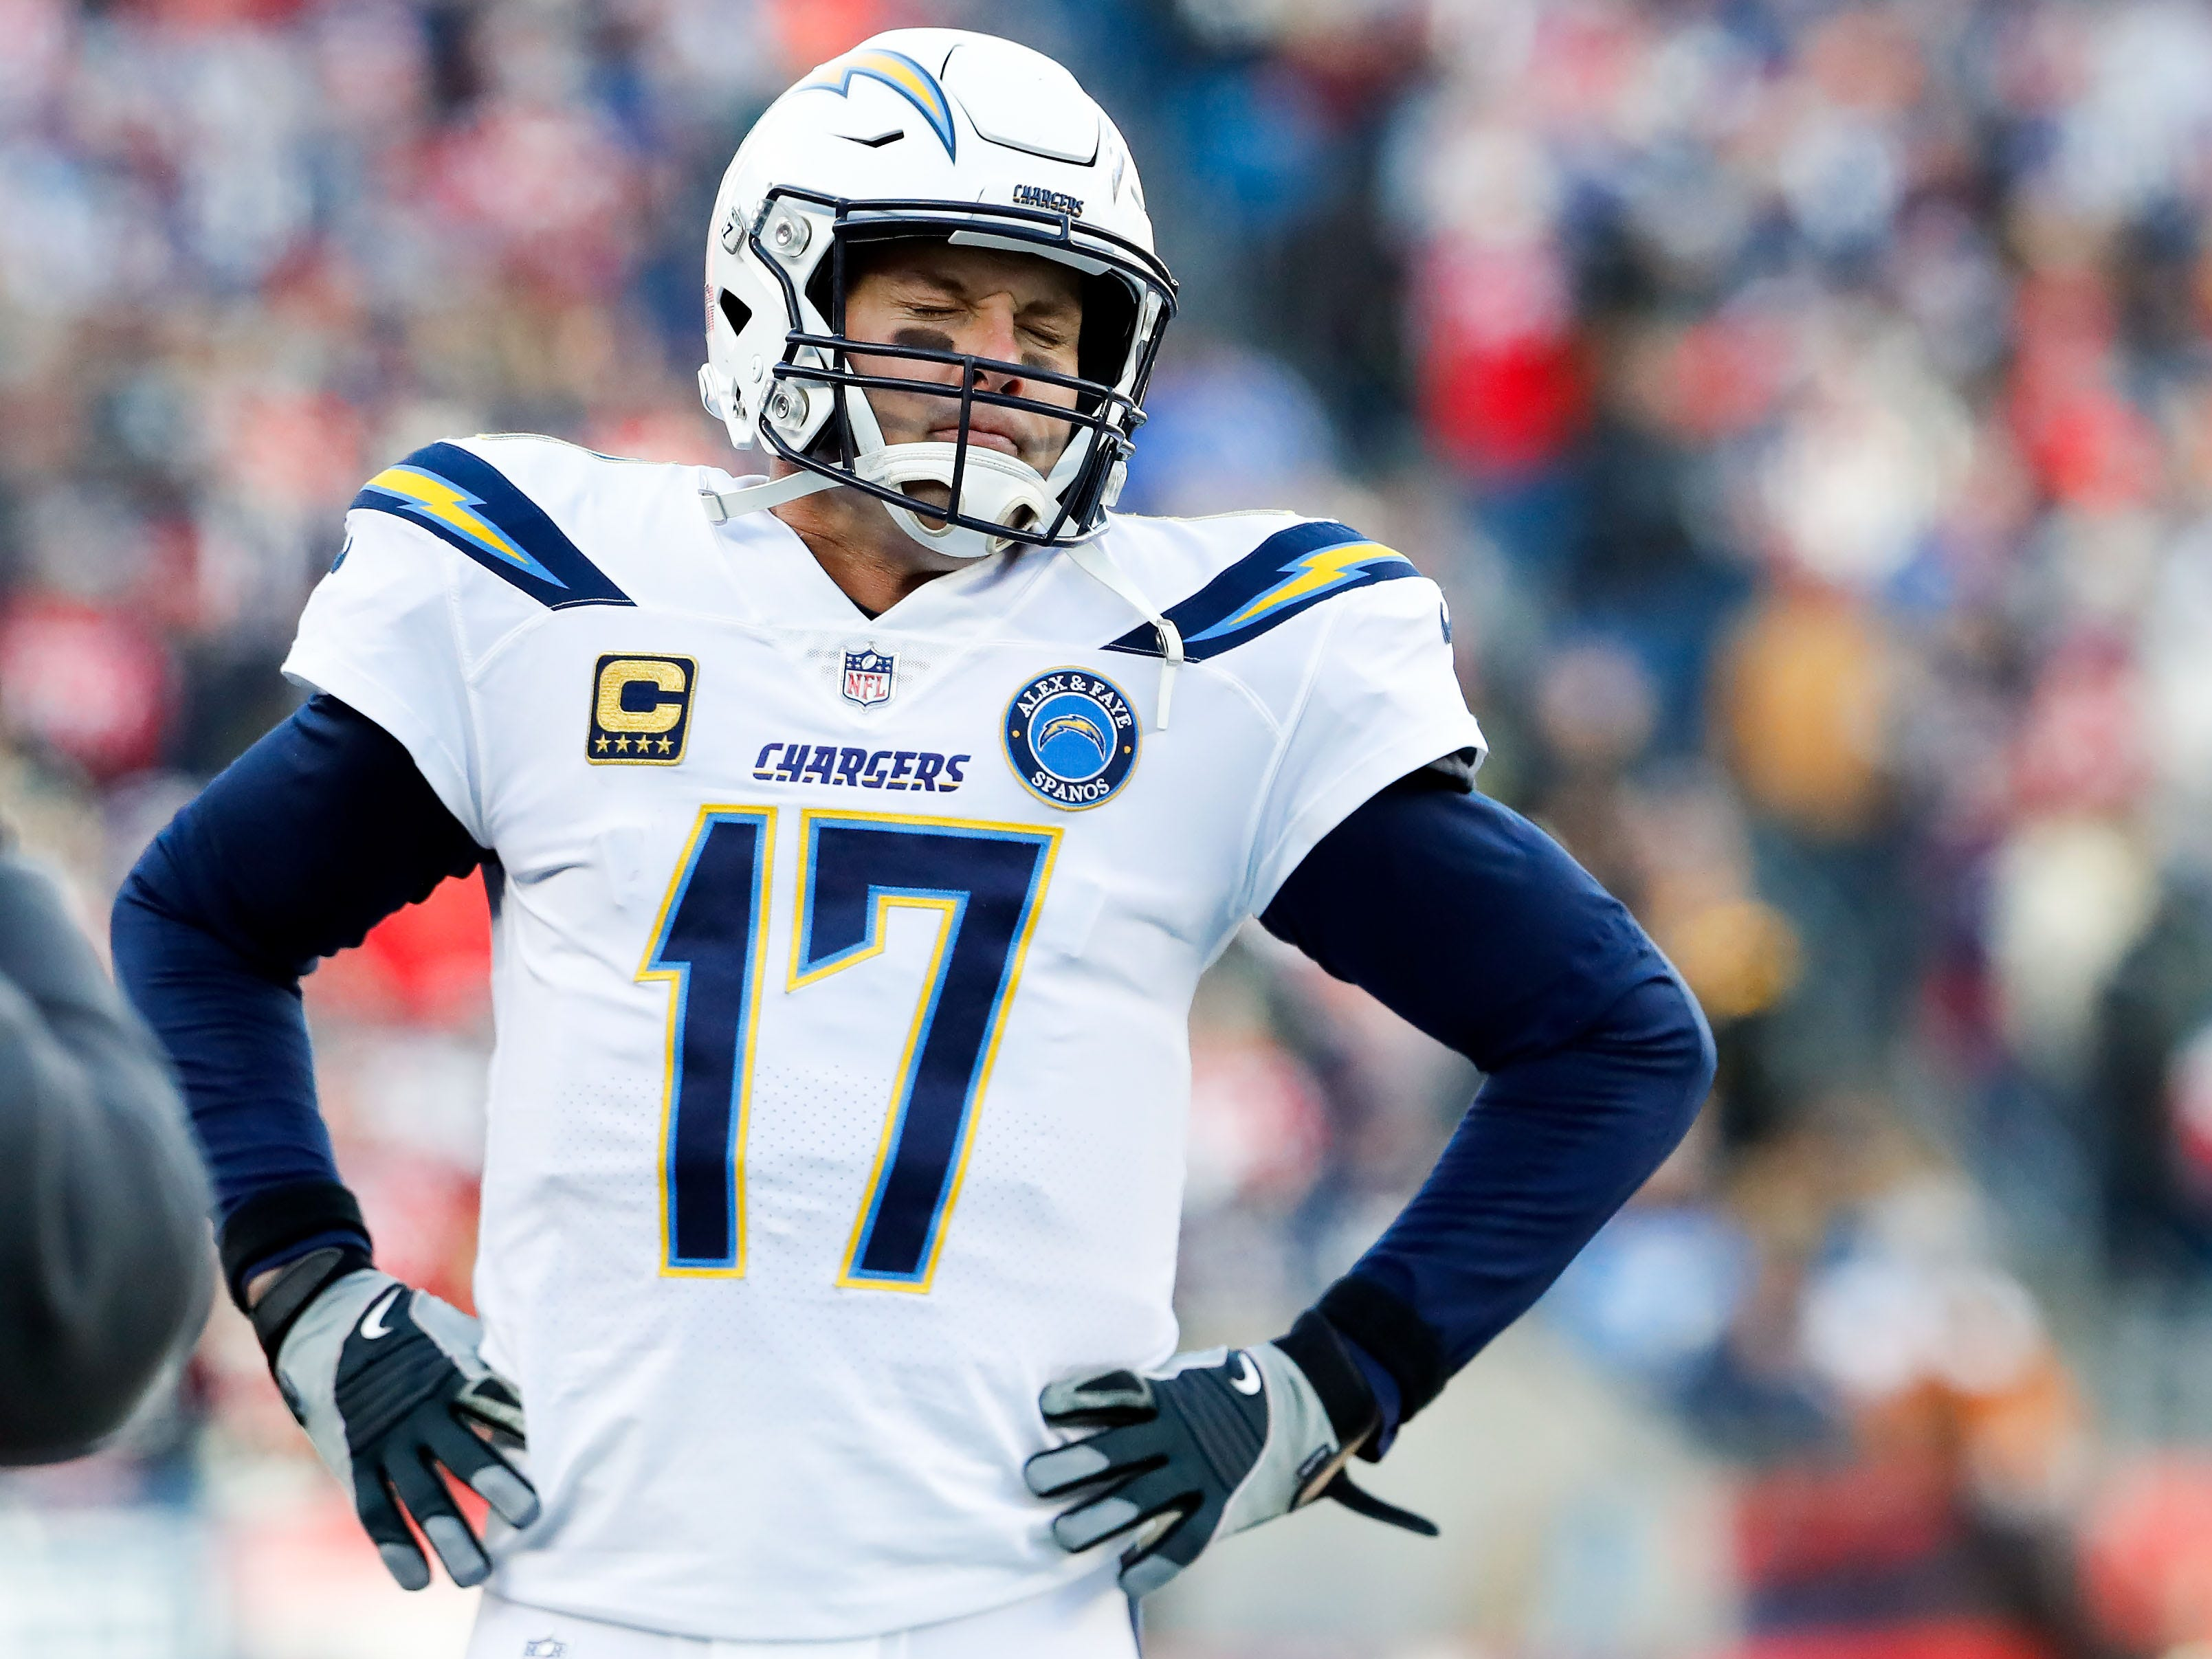 Los Angeles Chargers quarterback Philip Rivers (17) reacts from the sidelines during the second quarter against the New England Patriots in an AFC Divisional playoff football game at Gillette Stadium.